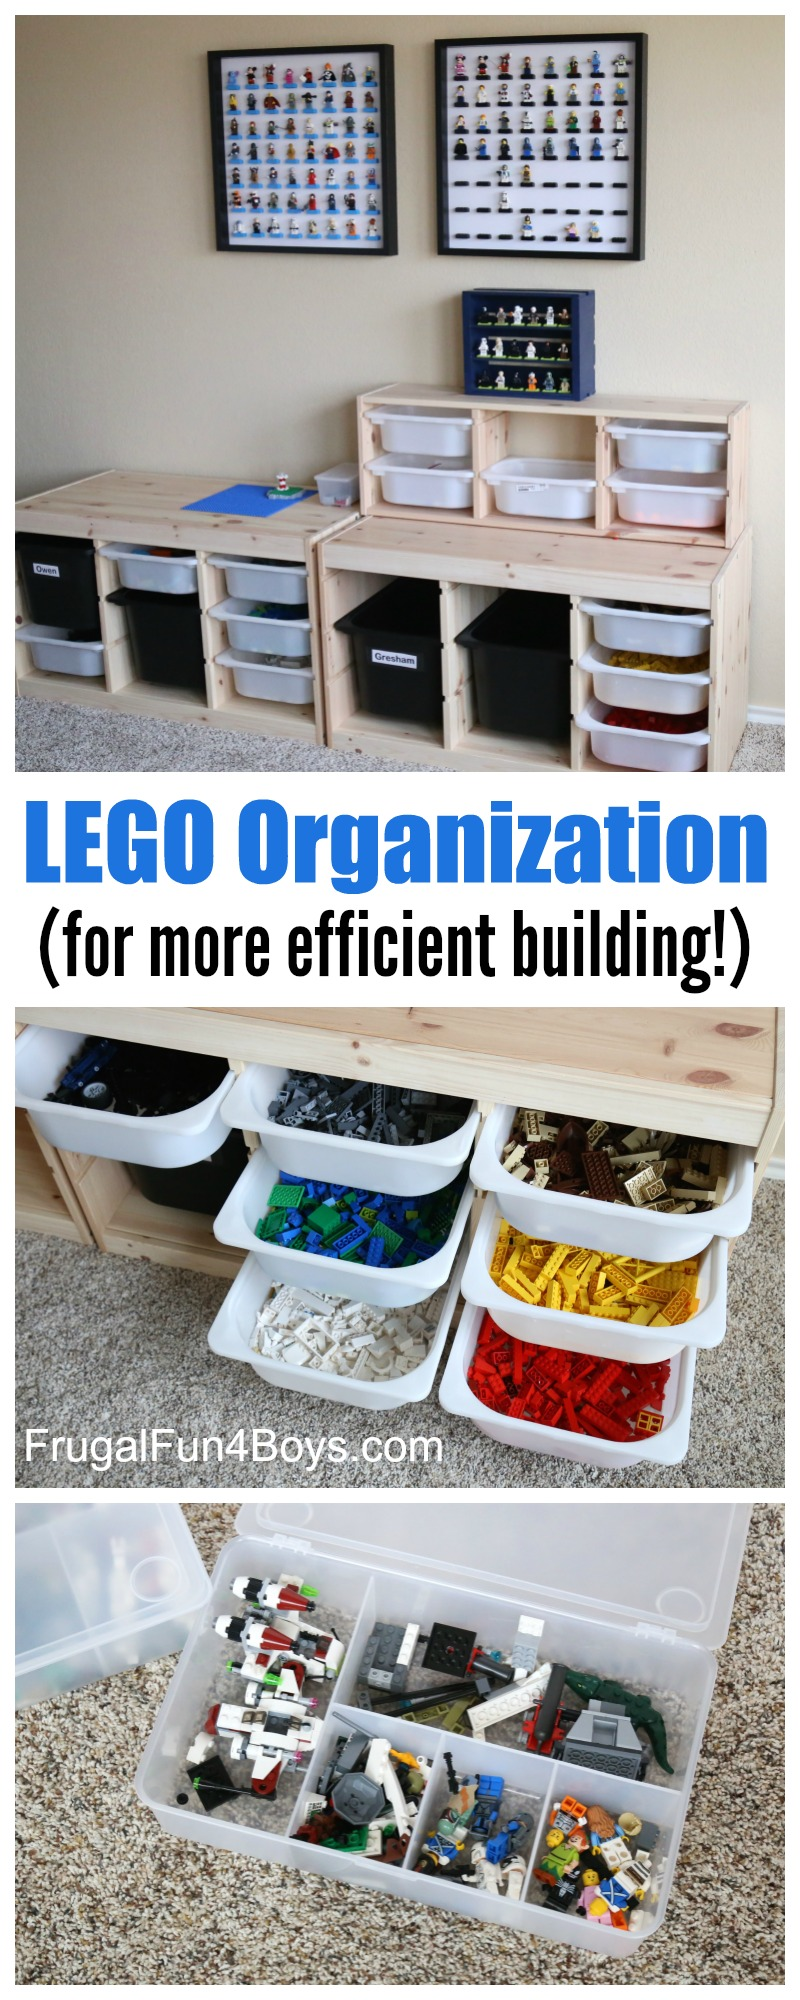 LEGO Storage and Organization for More Efficient Building